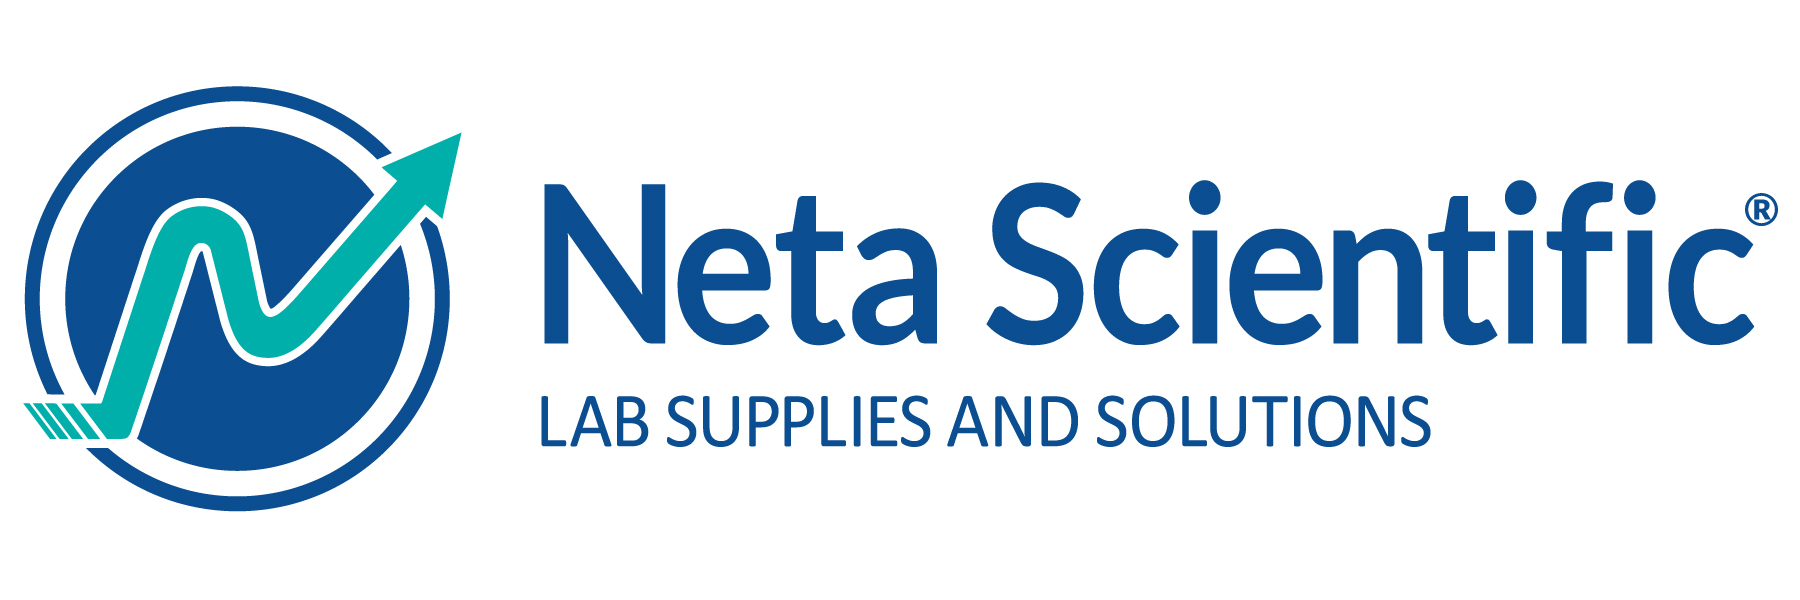 Neta Scientific Incorporated Logo